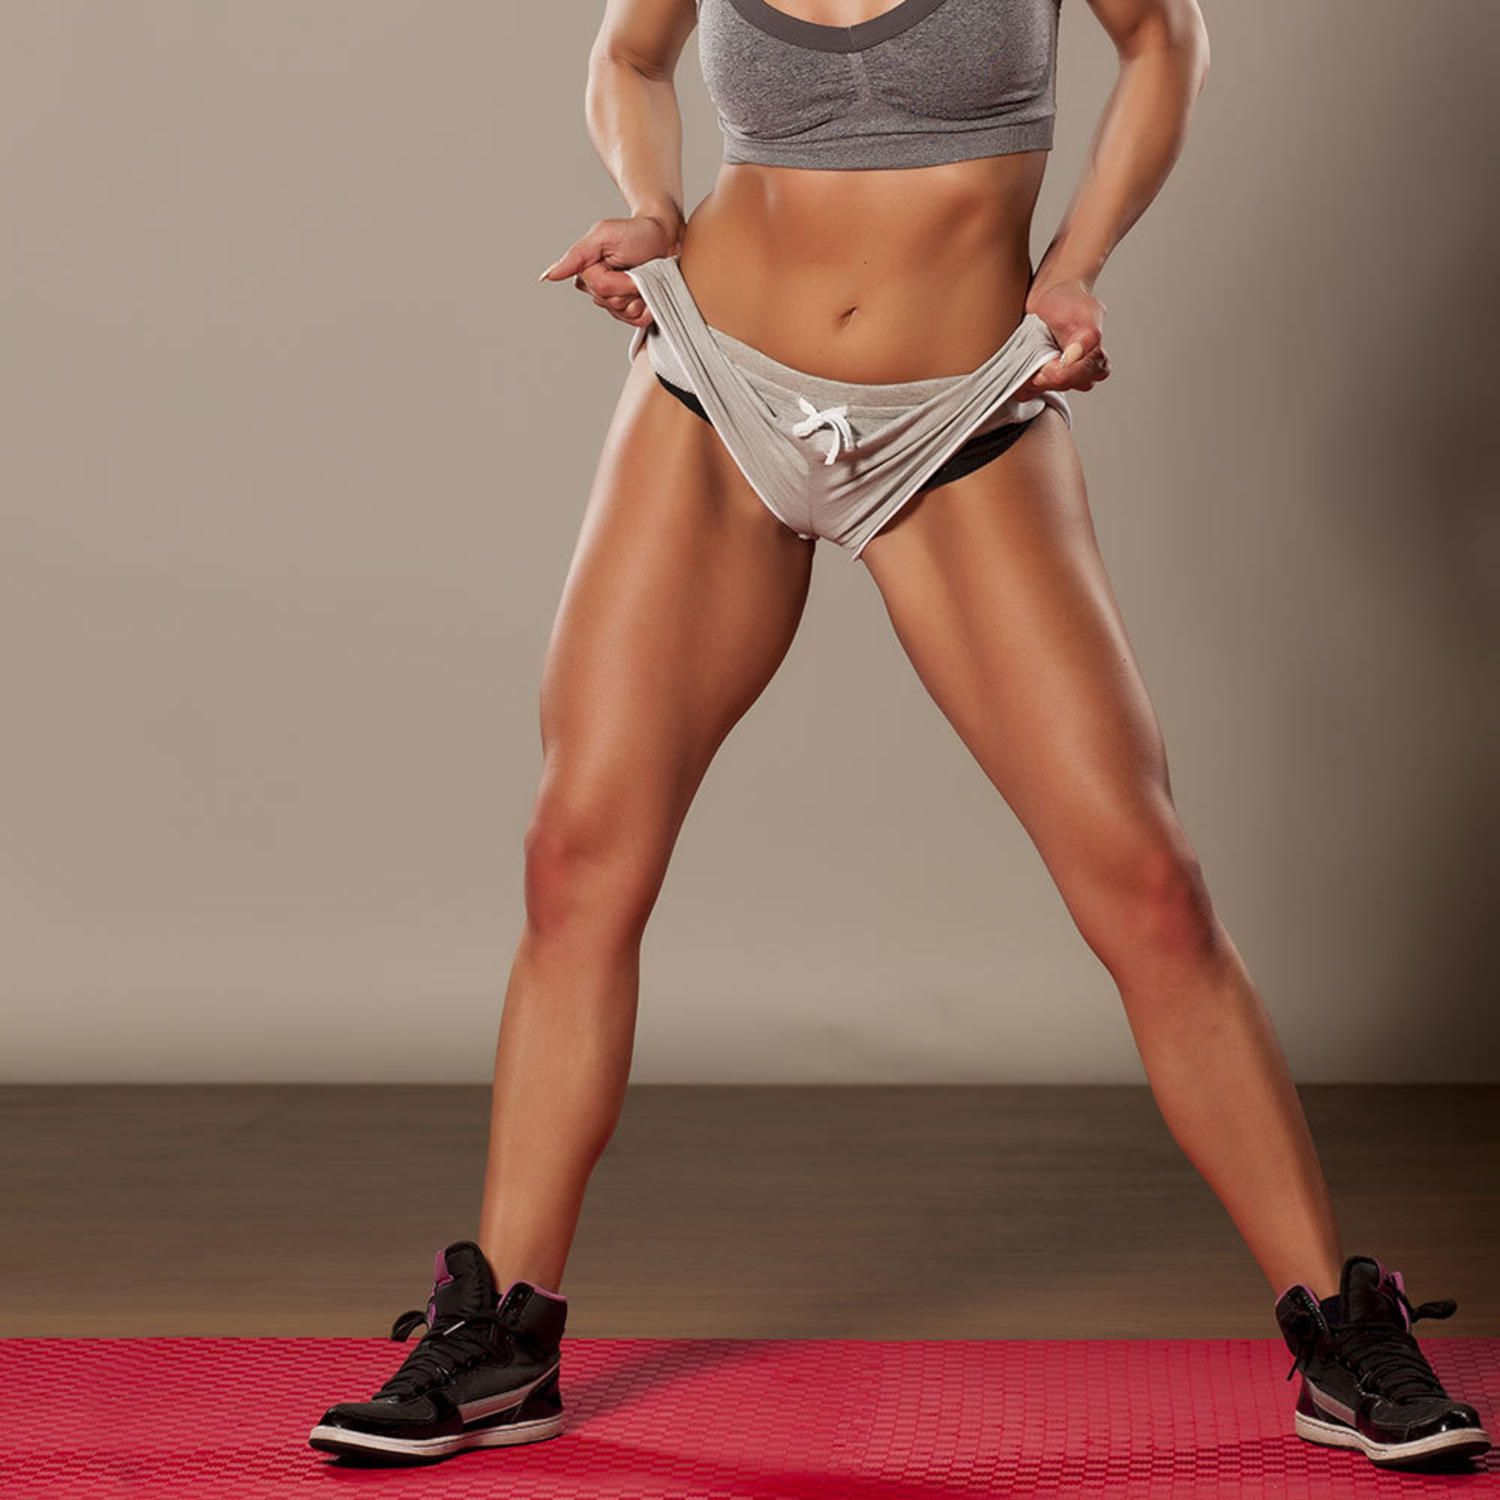 What muscle region of the body does the lunge exercise focus on?